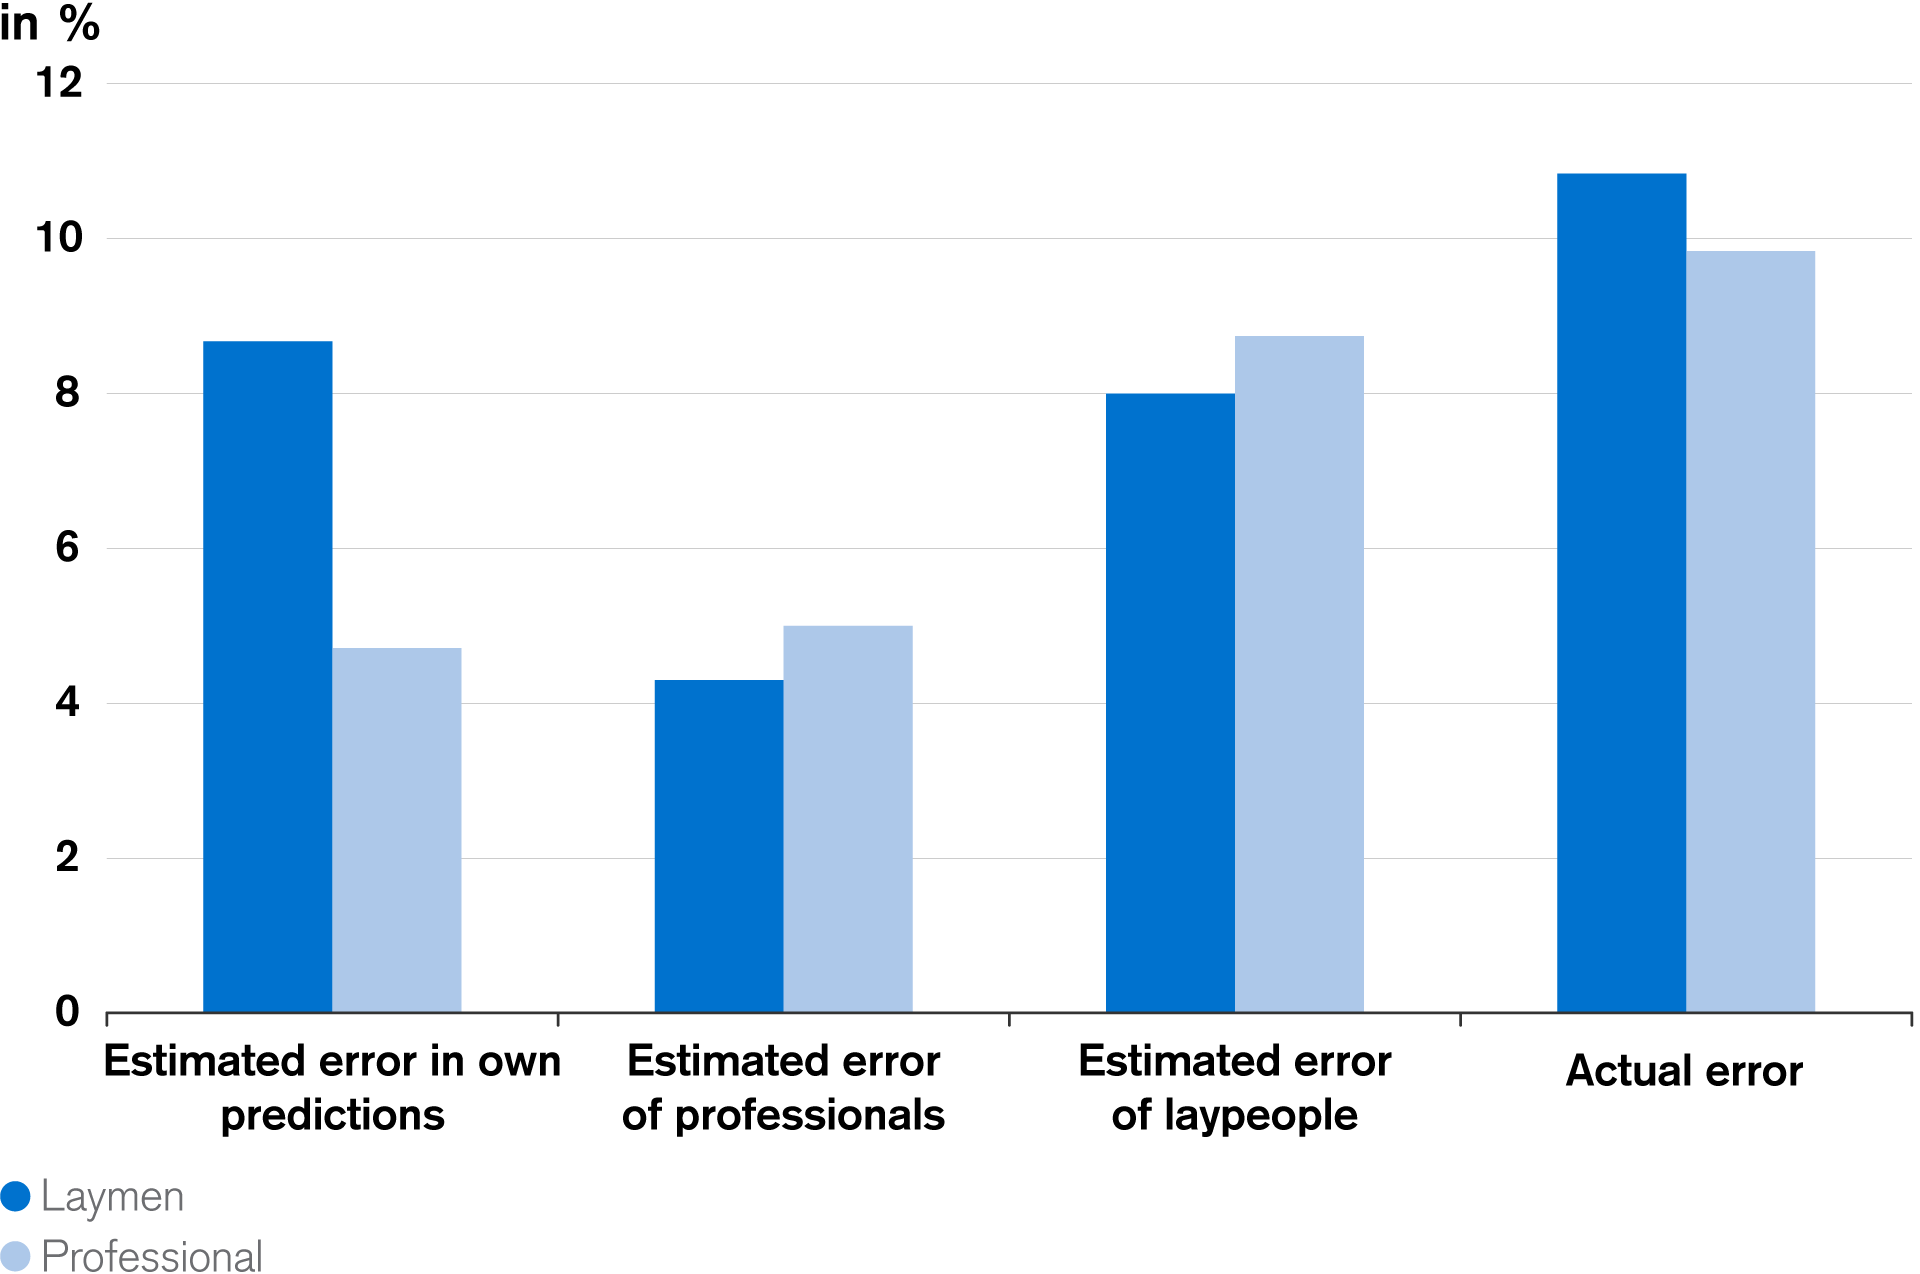 Figure 2: Estimated Error of Professionals vs. Laypeople on Stock Predictions